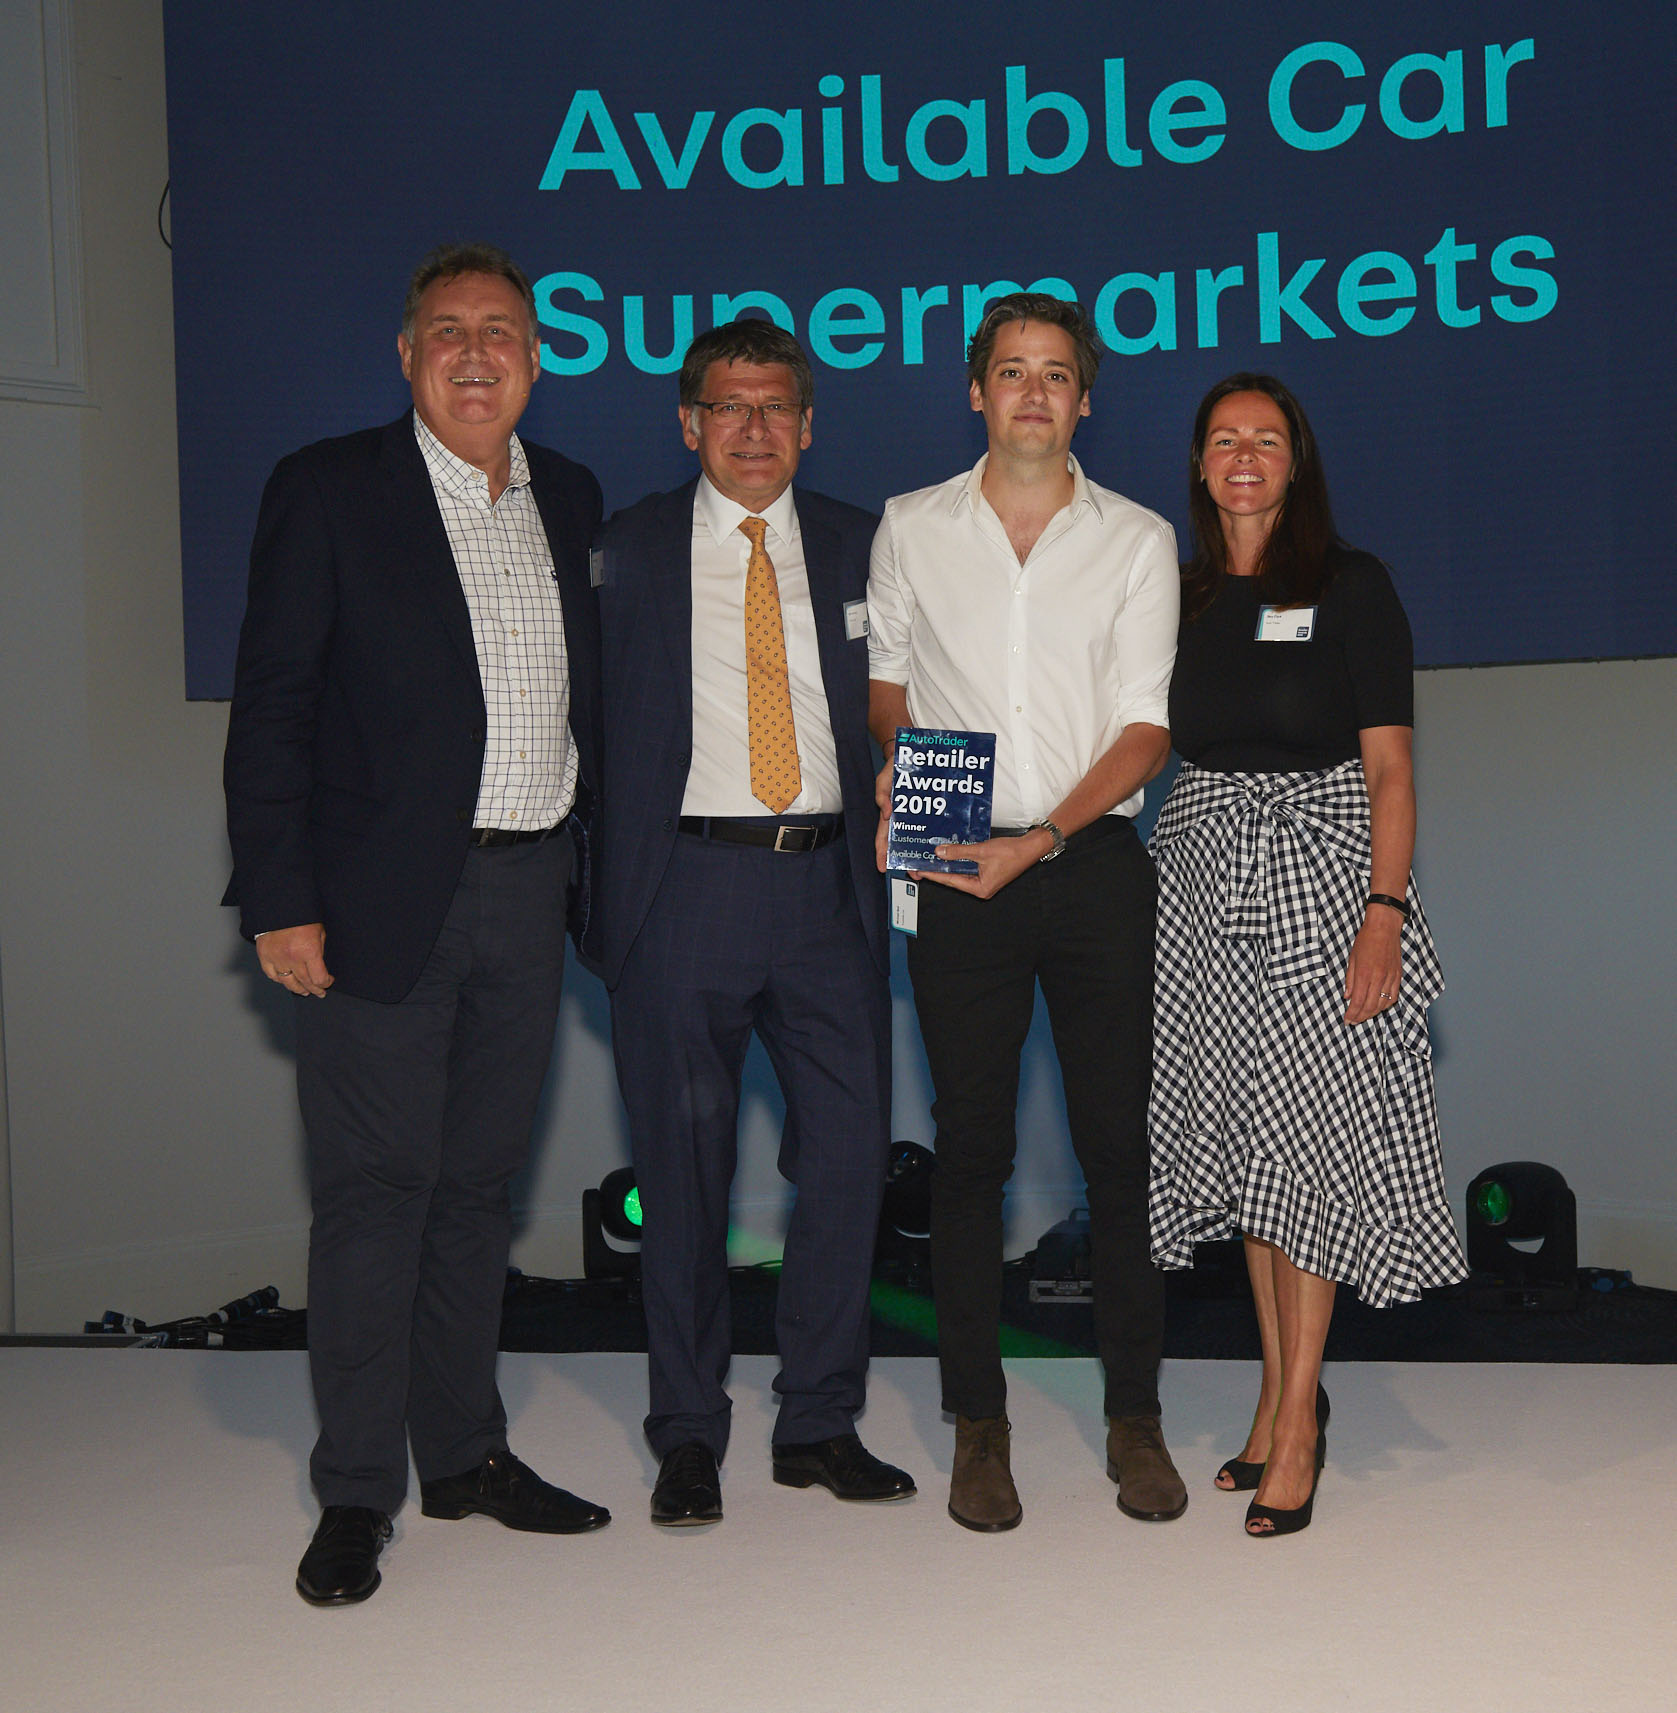 Customer Choice Award (over 100 cars)